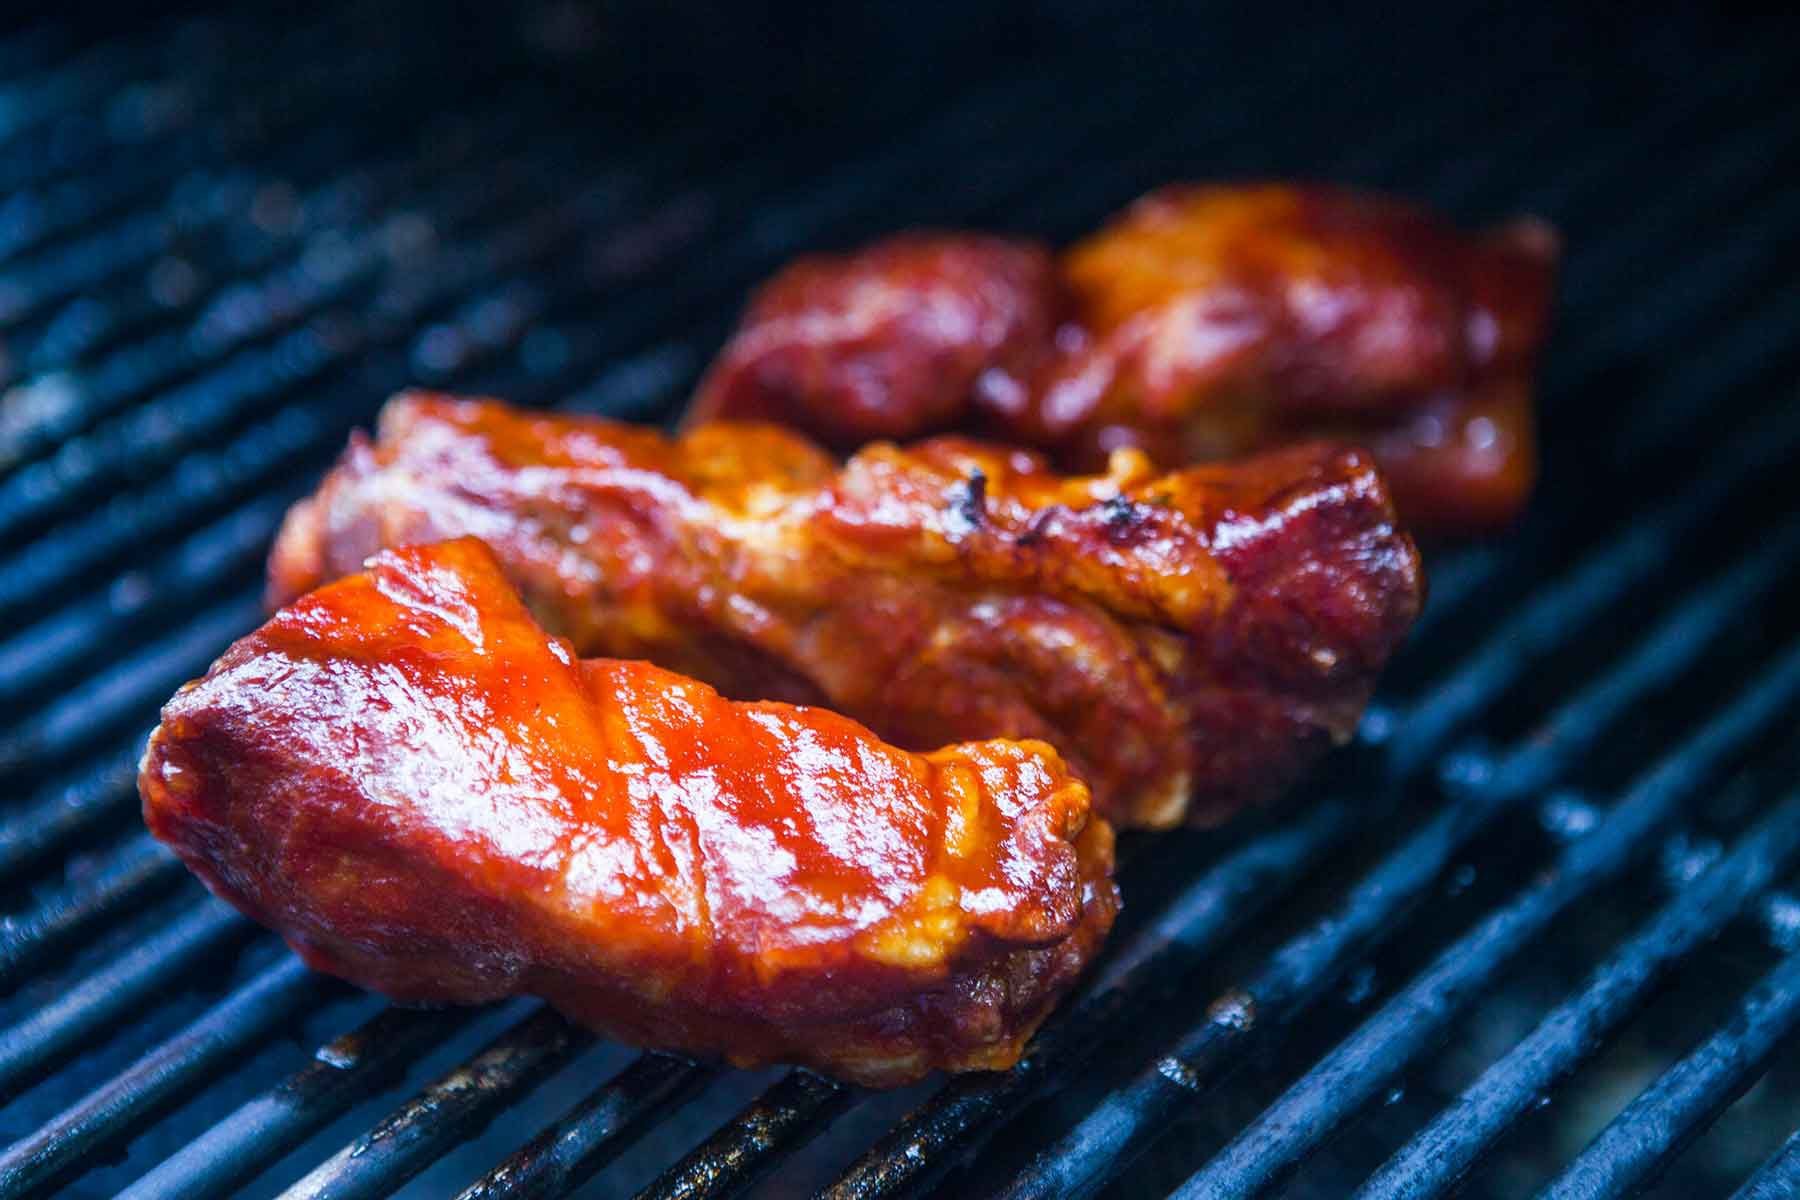 Country style Rib recipe - cooking country ribs slow and low